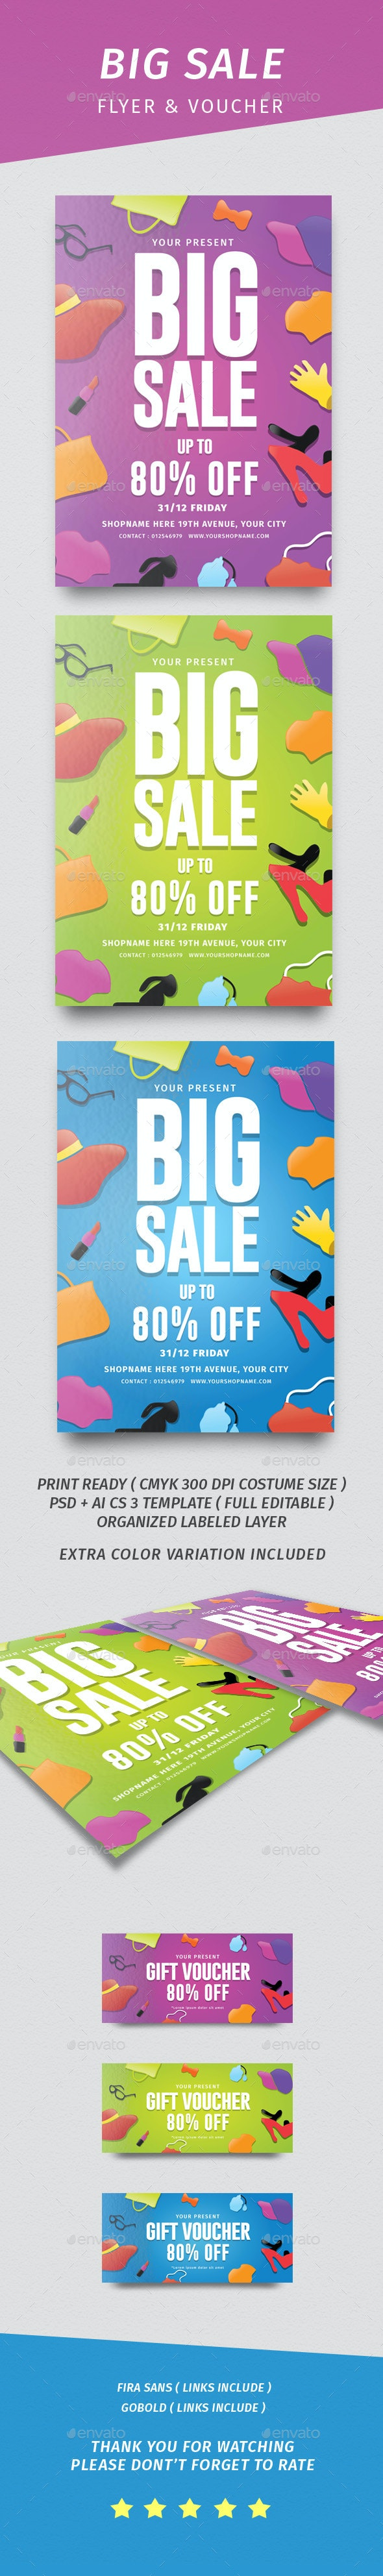 Big Sale Flyer & Voucher - Events Flyers